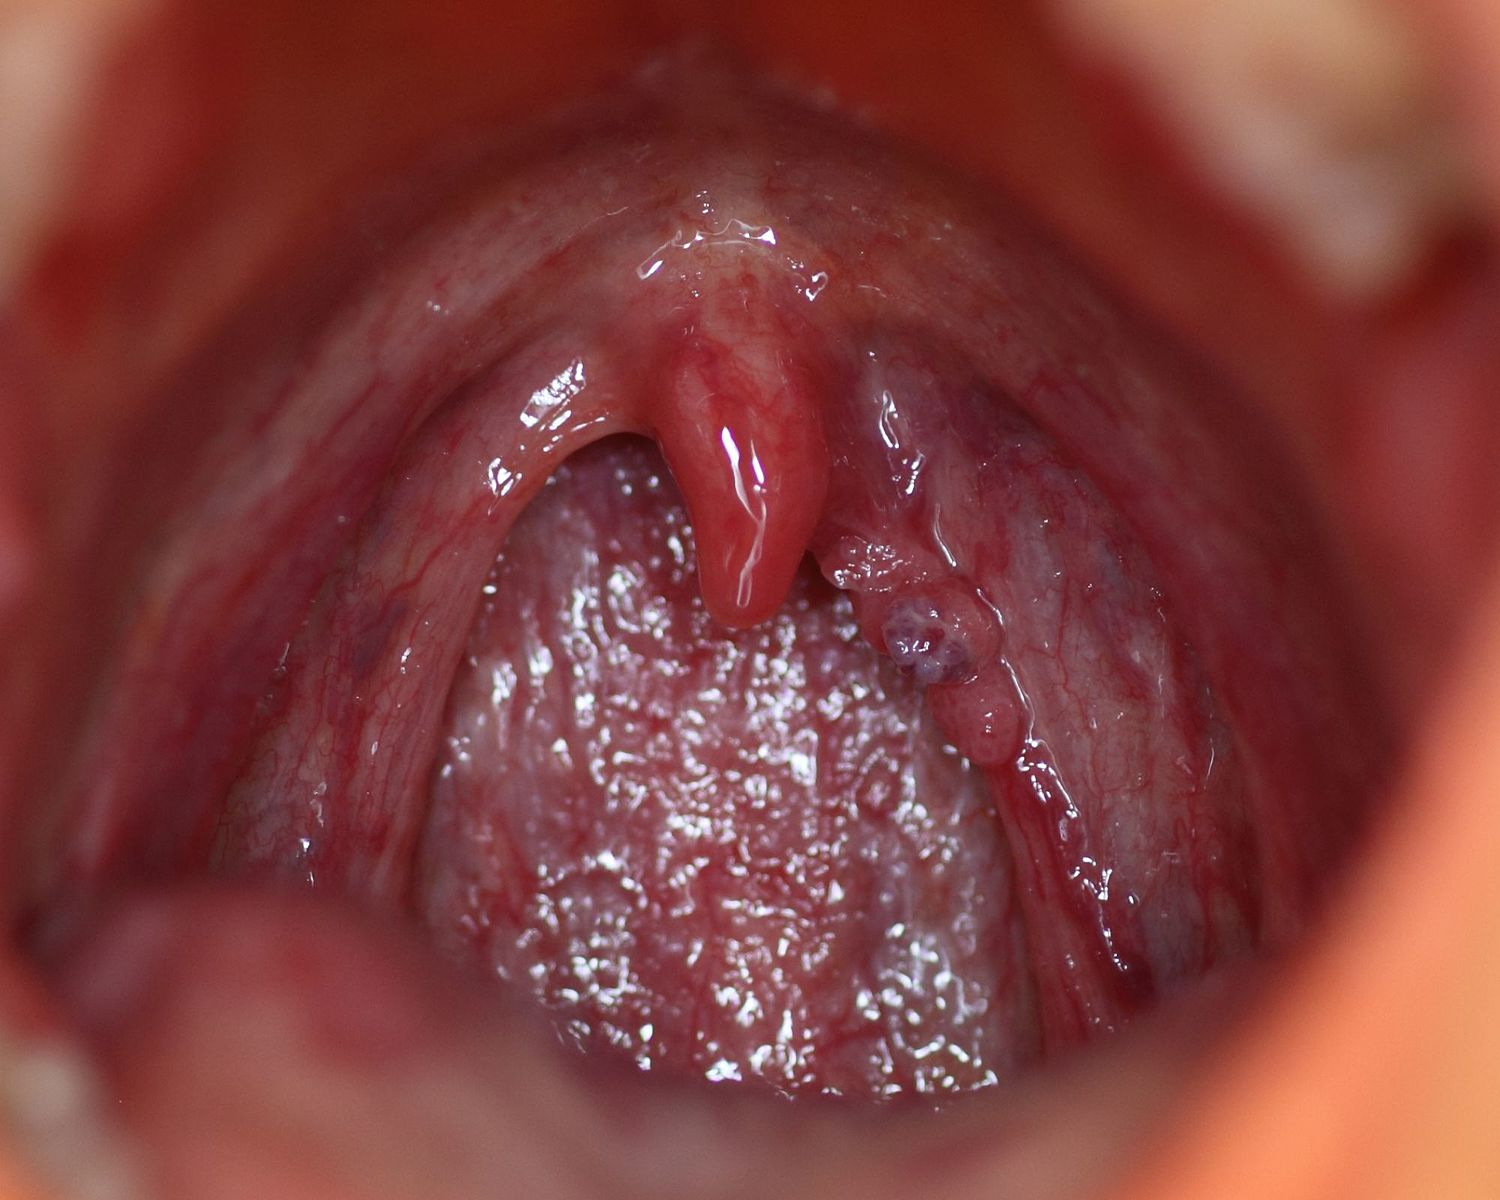 hpv mouth symptoms pictures